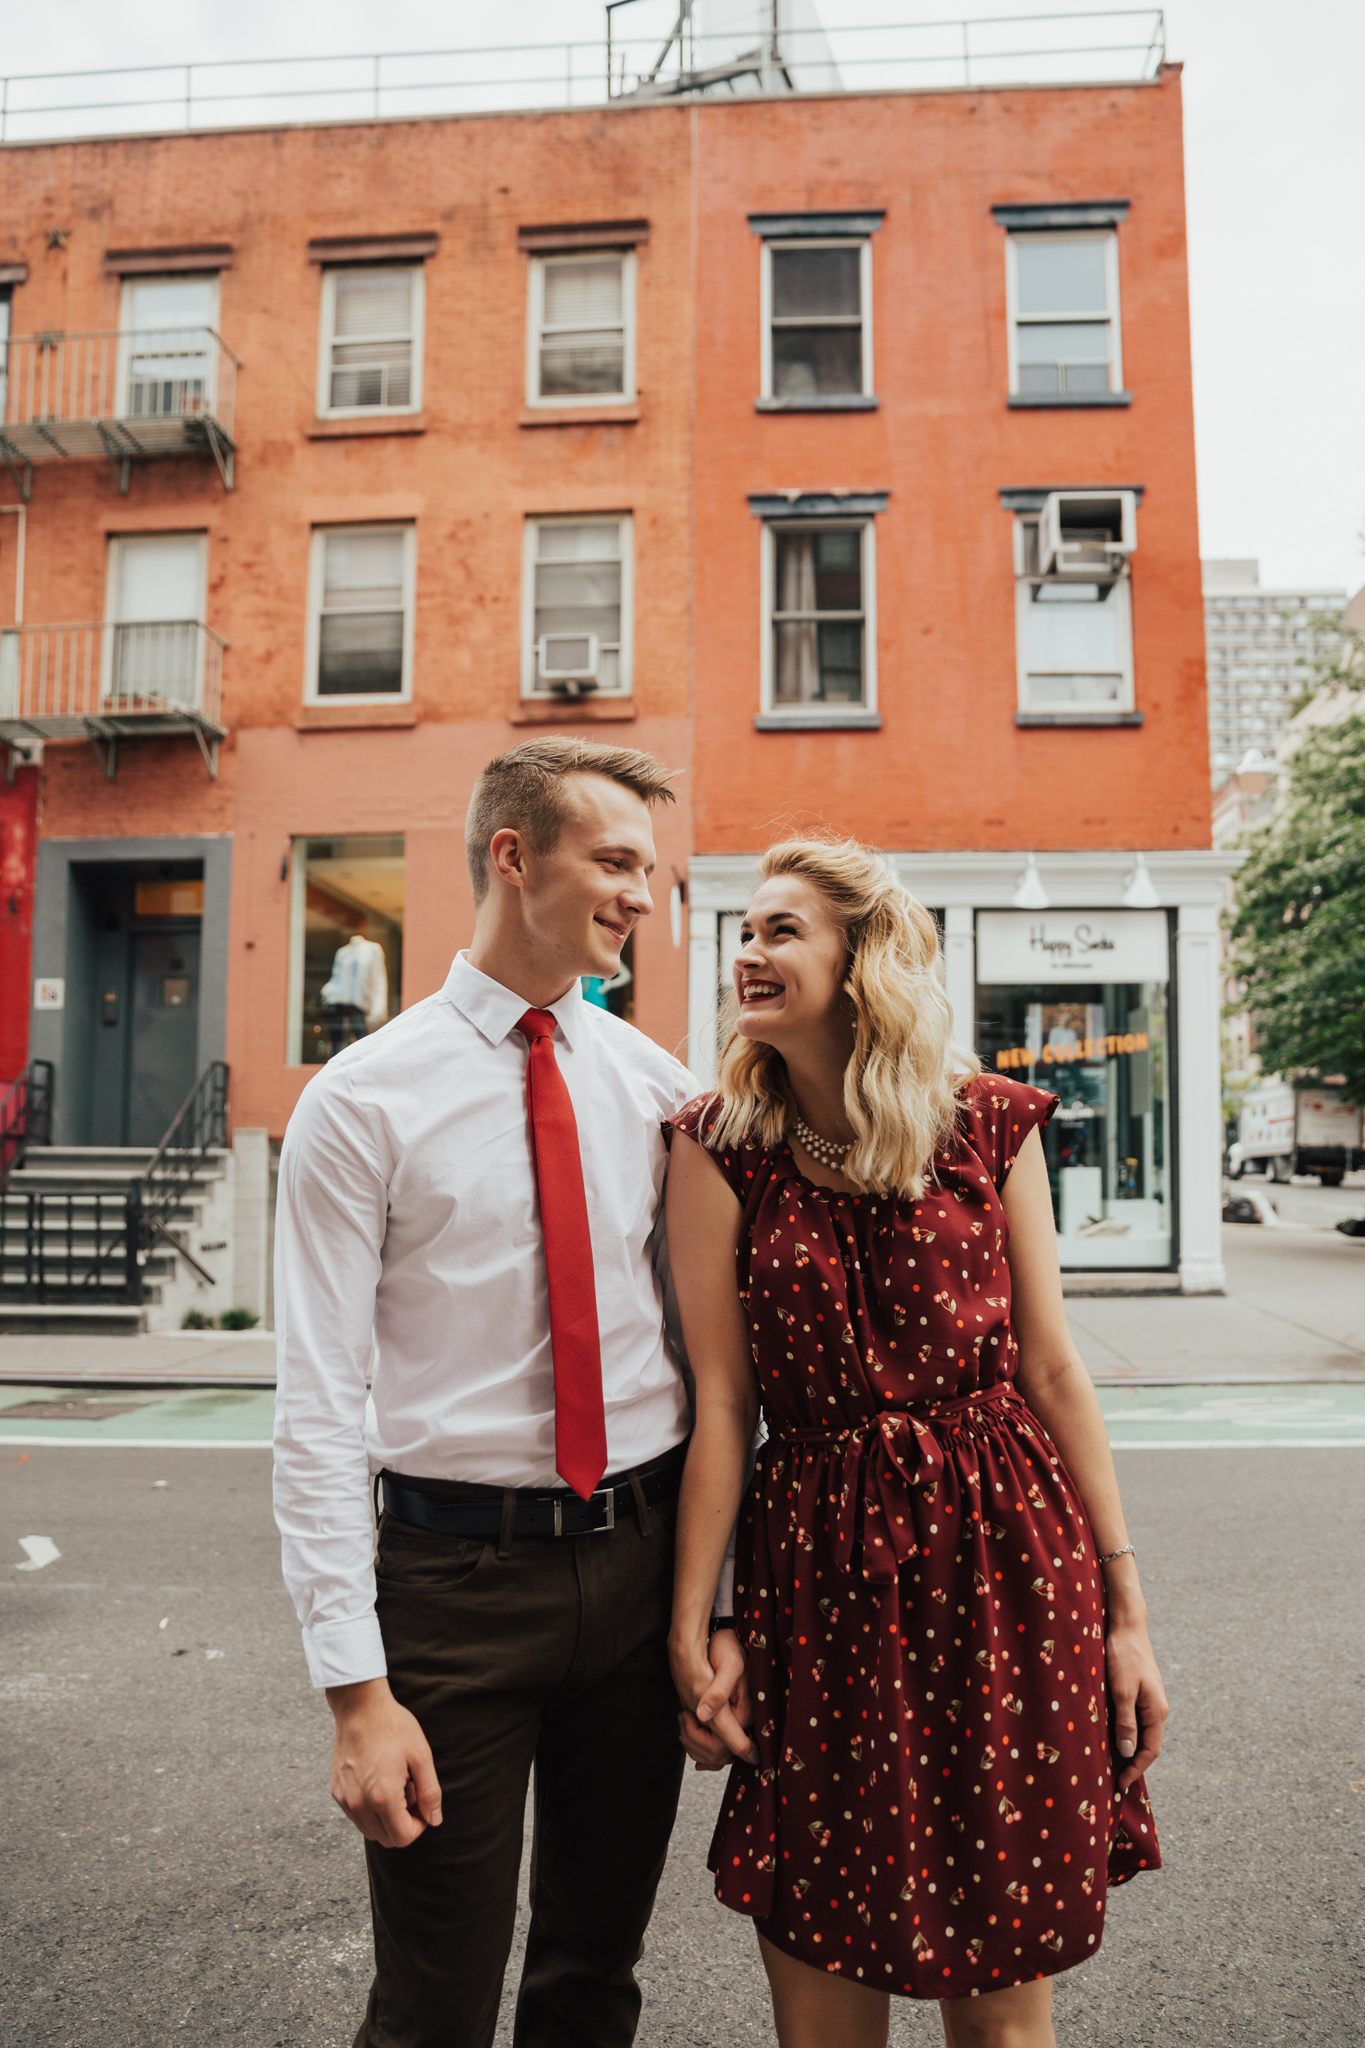 Rad nyc Couples photography